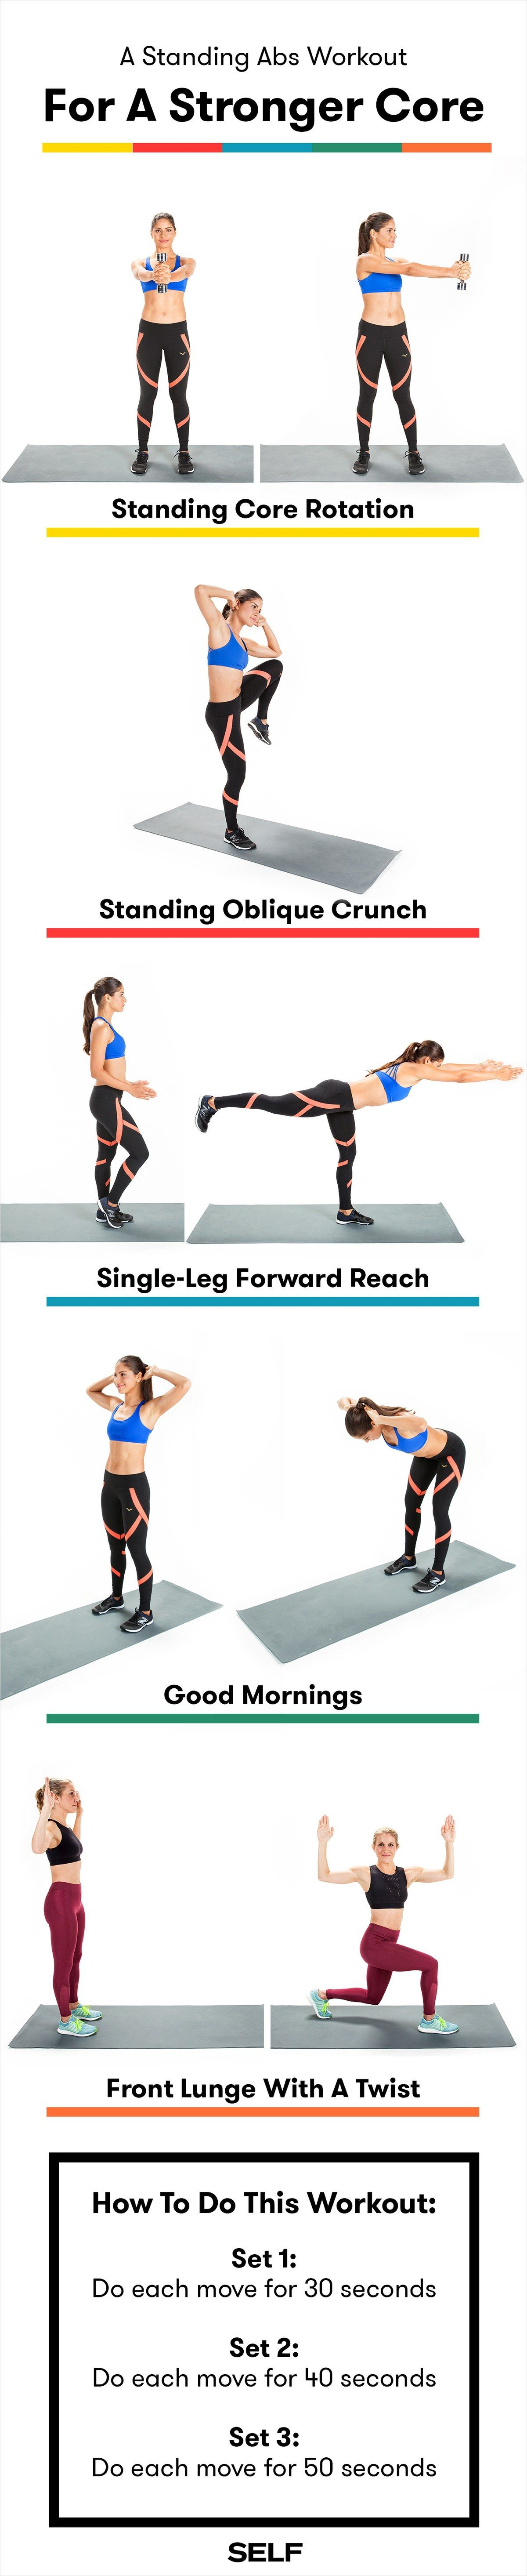 The Standing Abs Workout For A Strong Firm Core